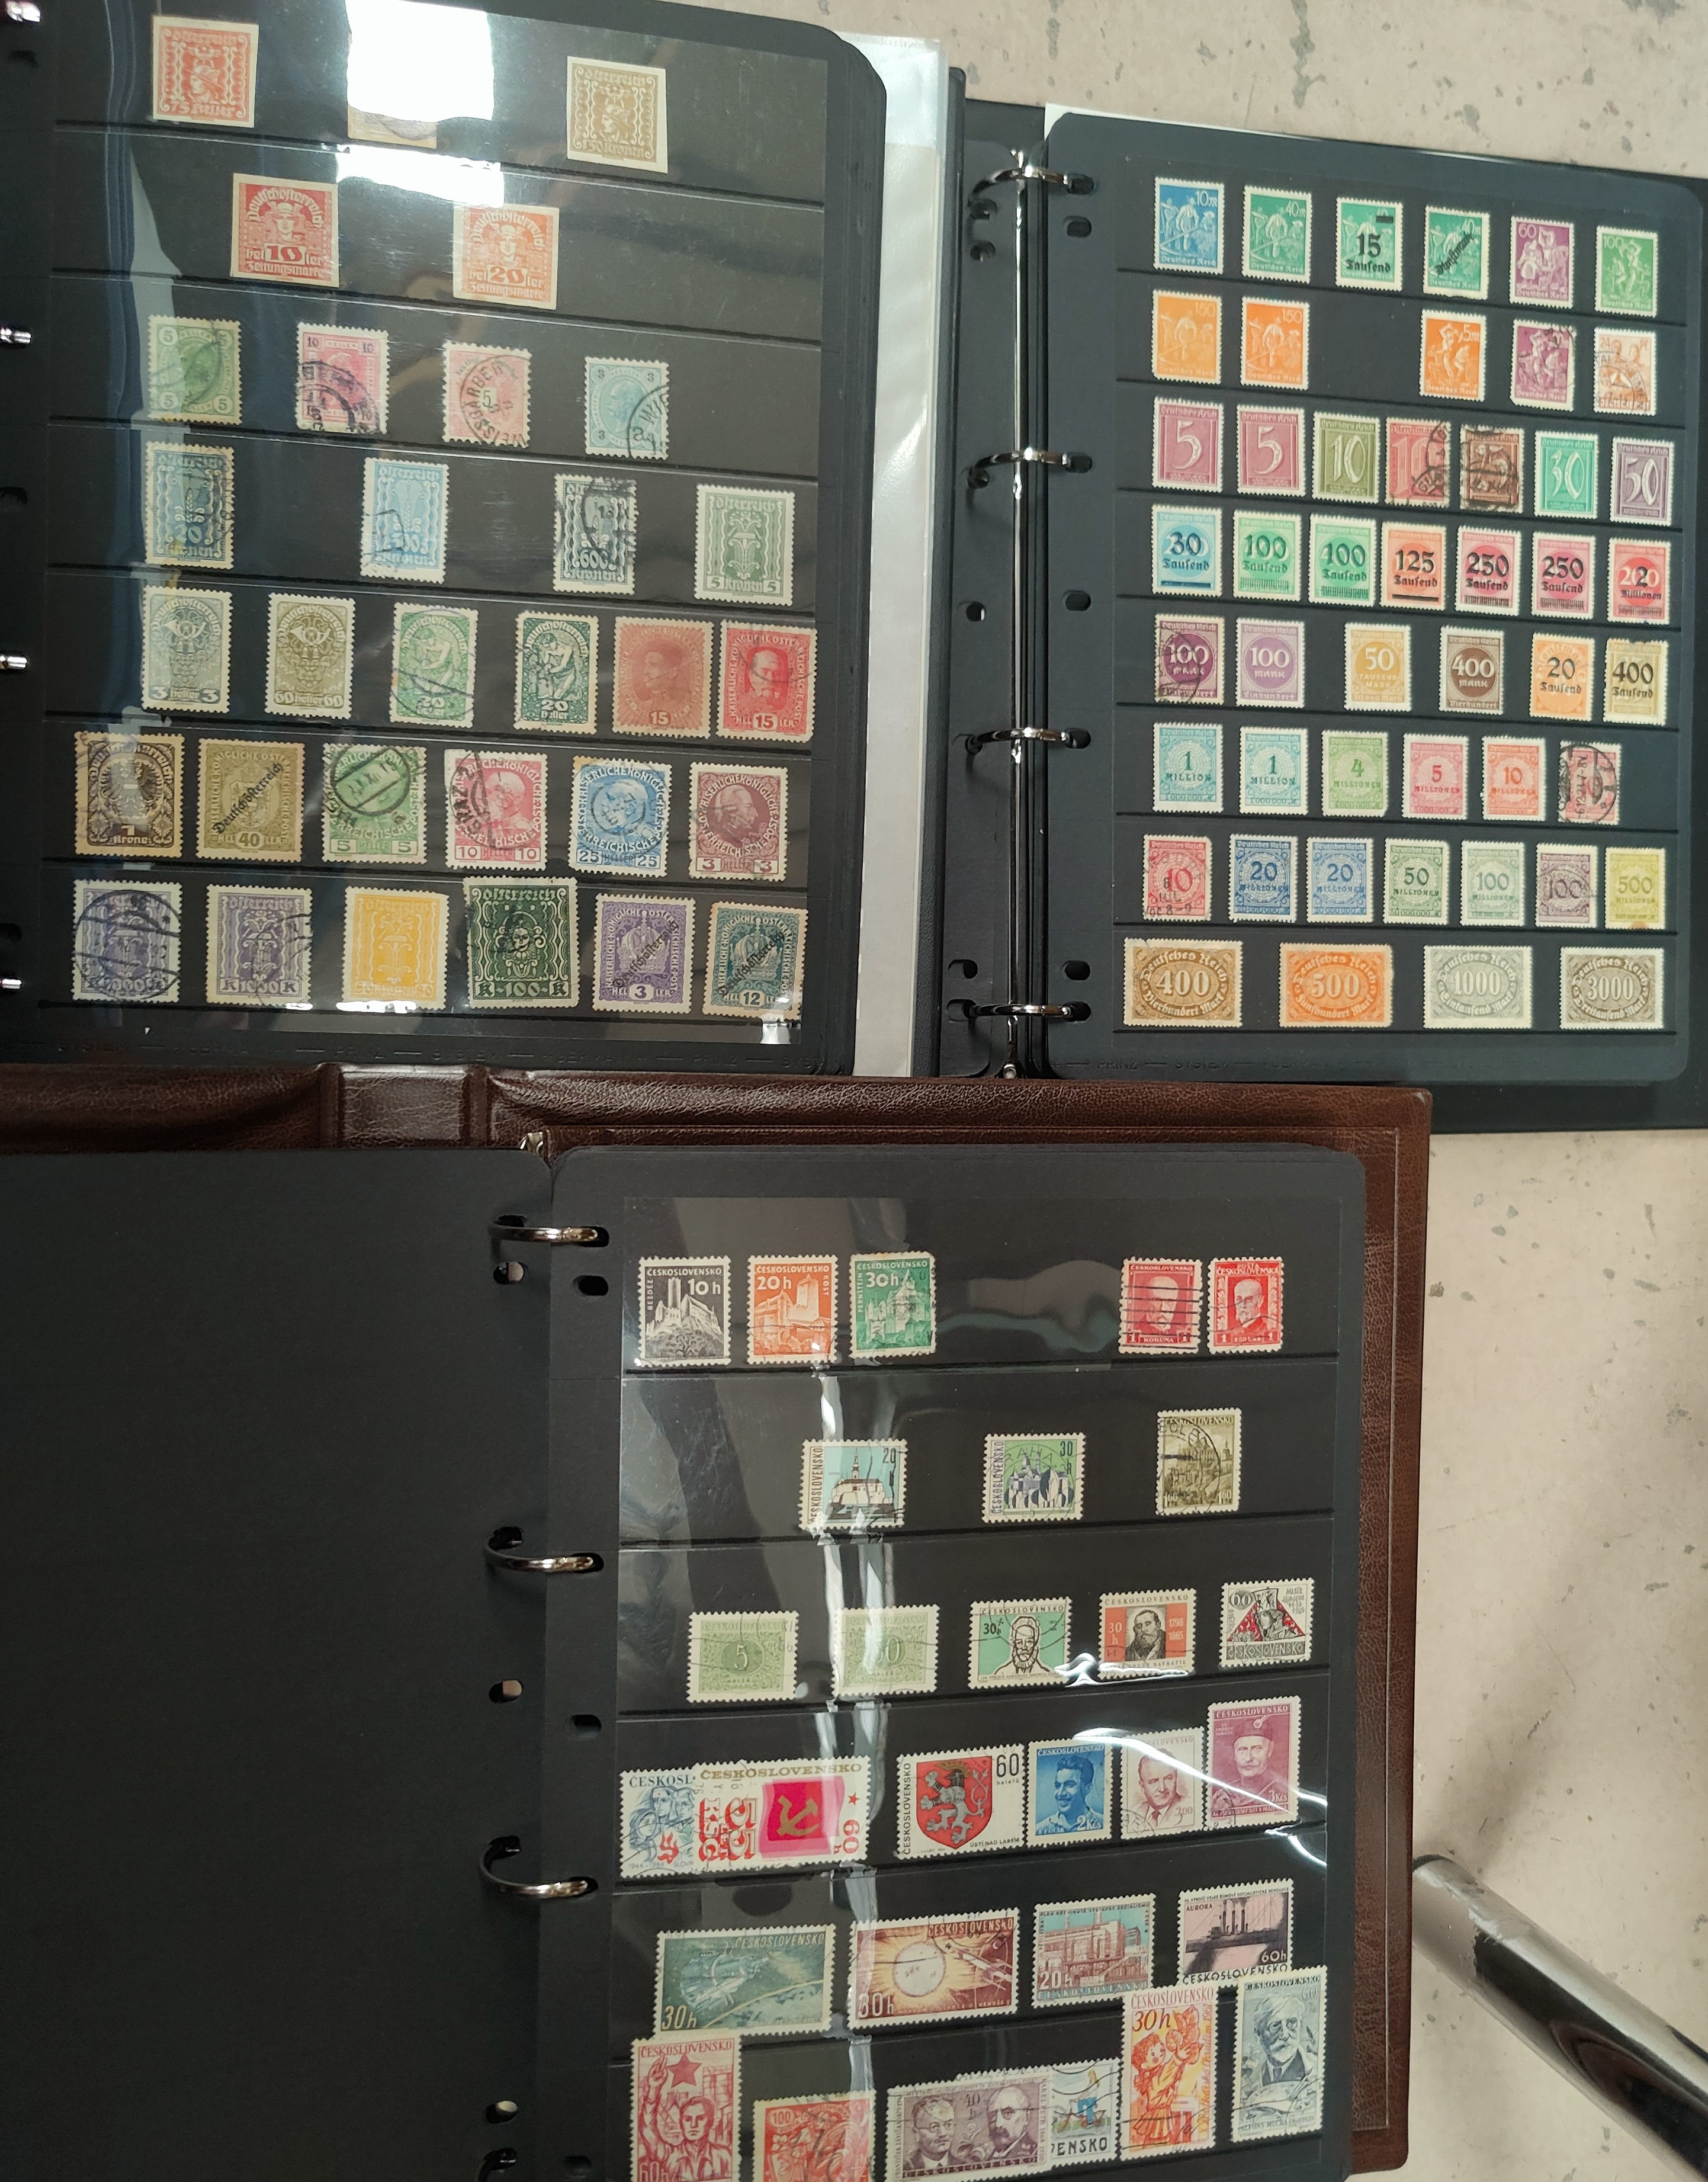 An album of stamps to include GERMANY (some 3rd Reich) and two albums, Austria, France Italy and